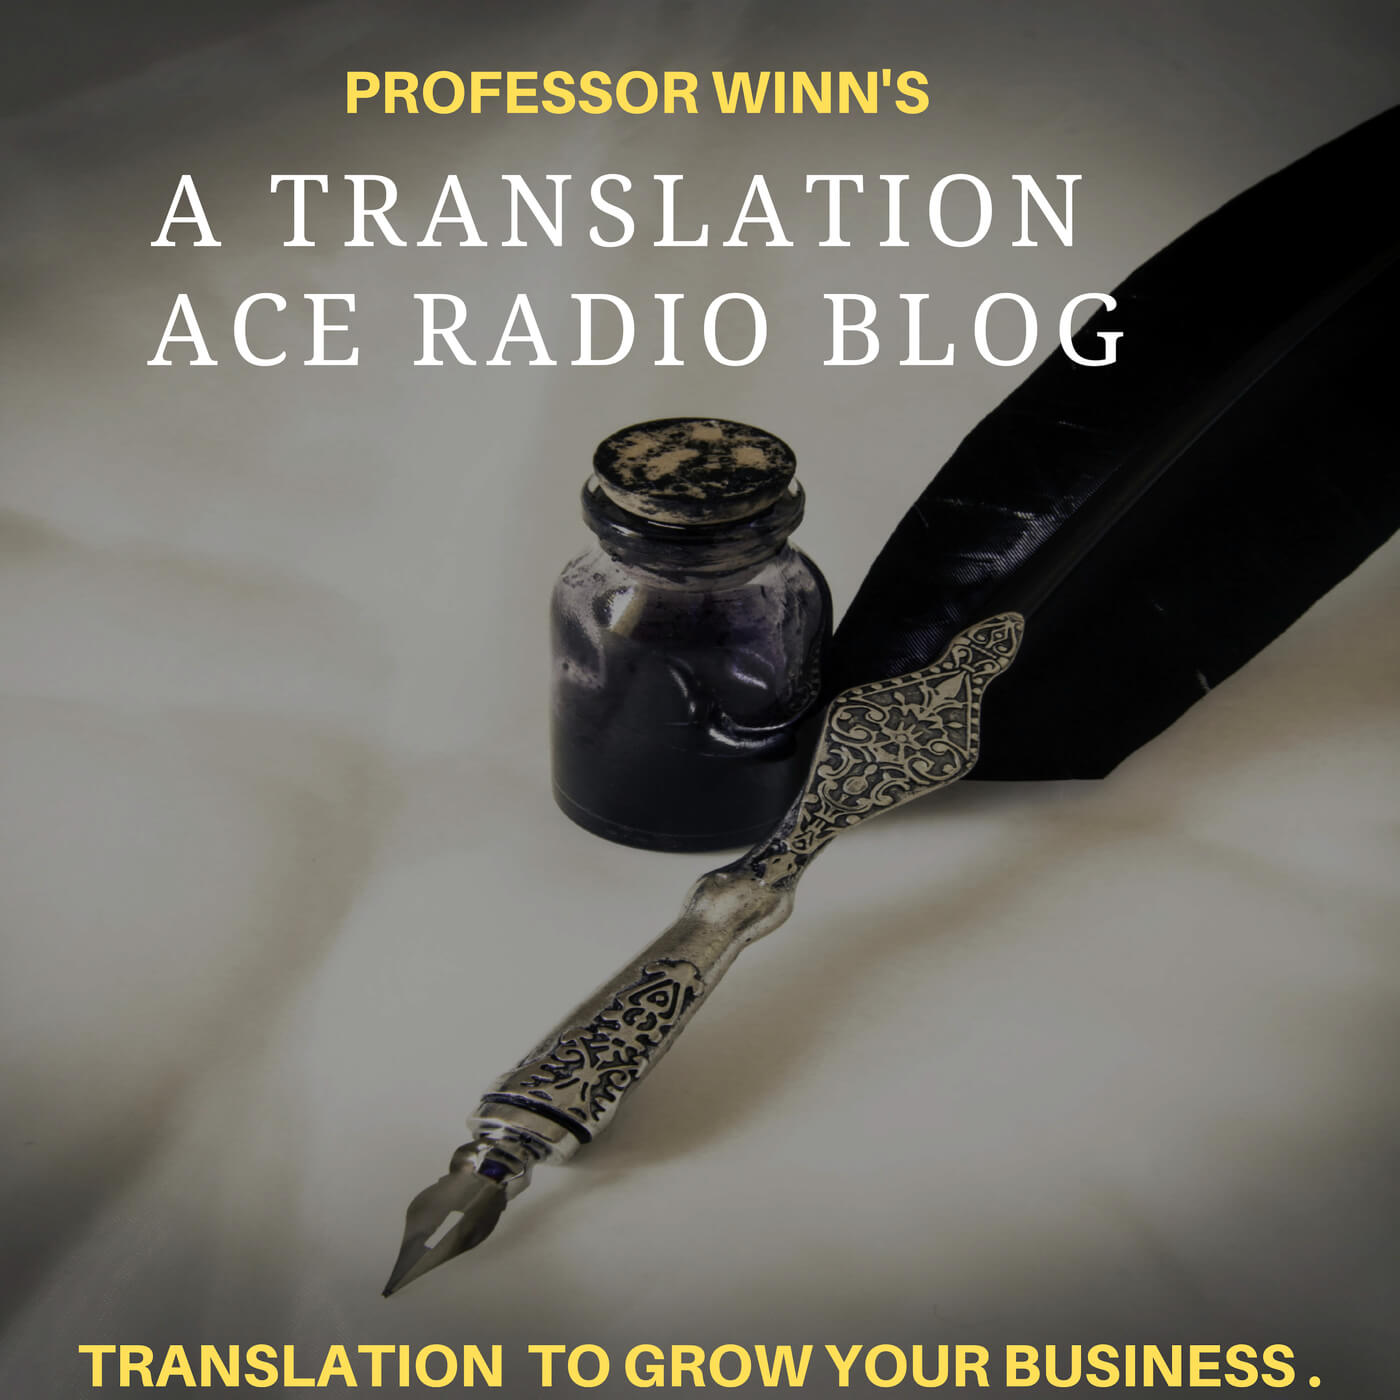 A Translation Ace Radio Blog